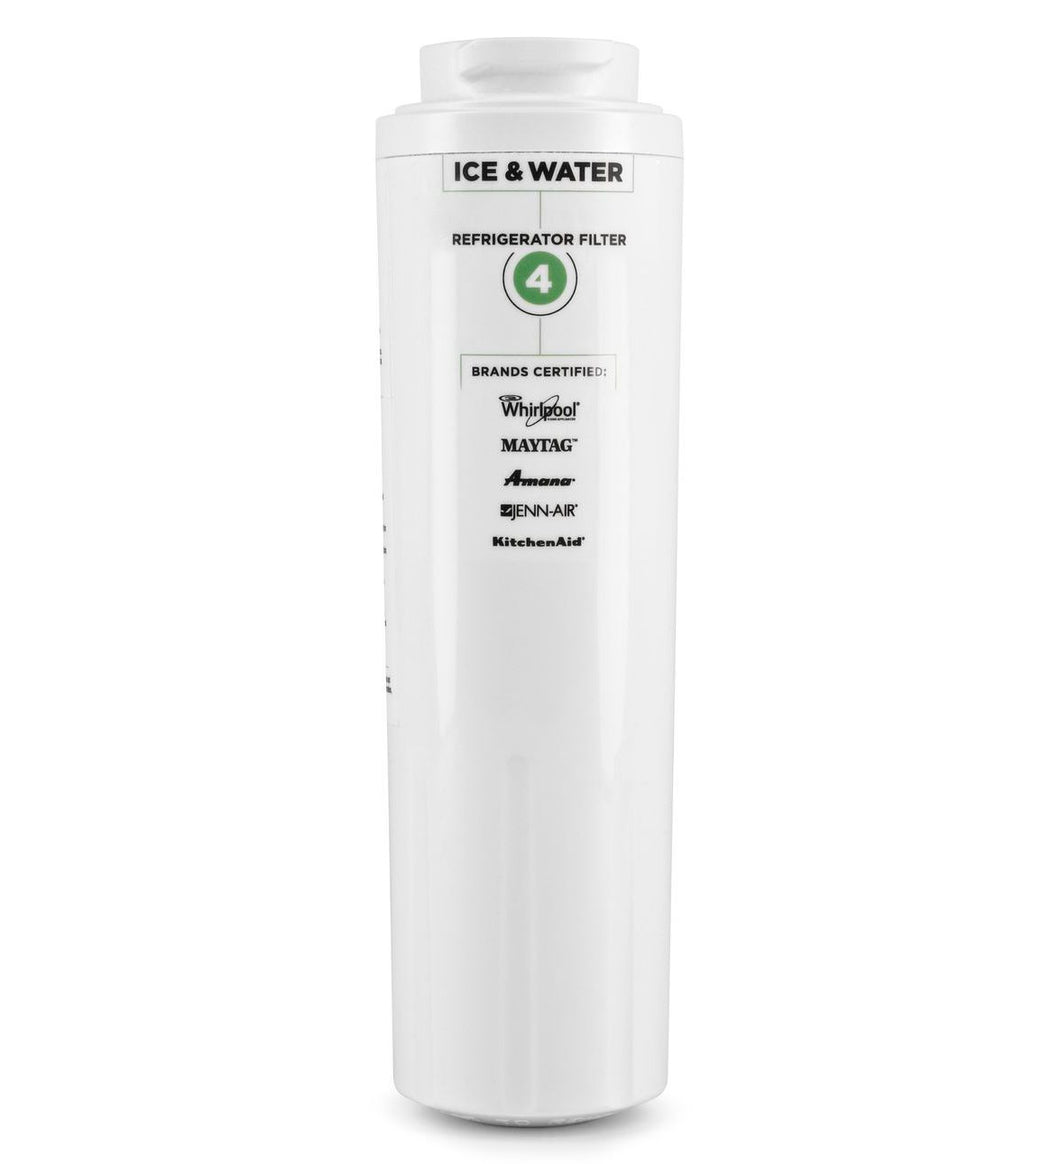 Whirlpool Water Filter 4